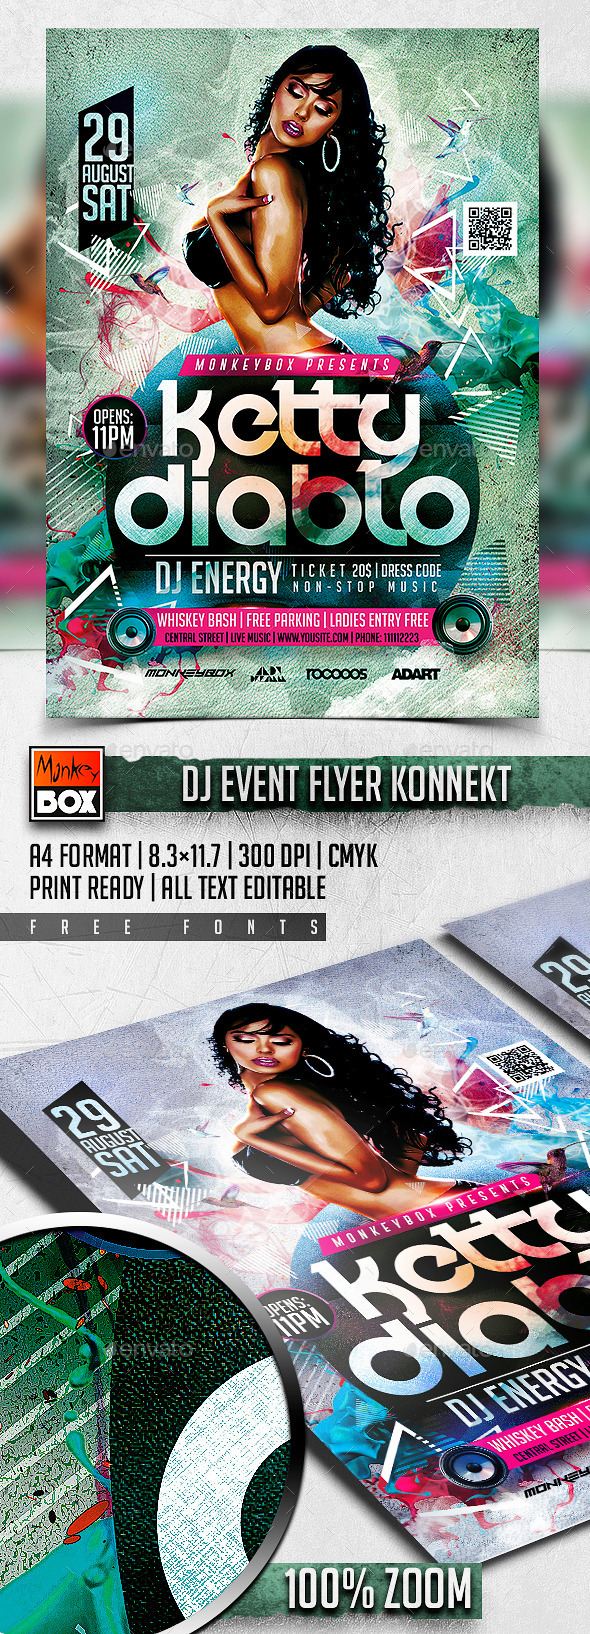 Dj Event Flyer Konnekt - Clubs & Parties Events